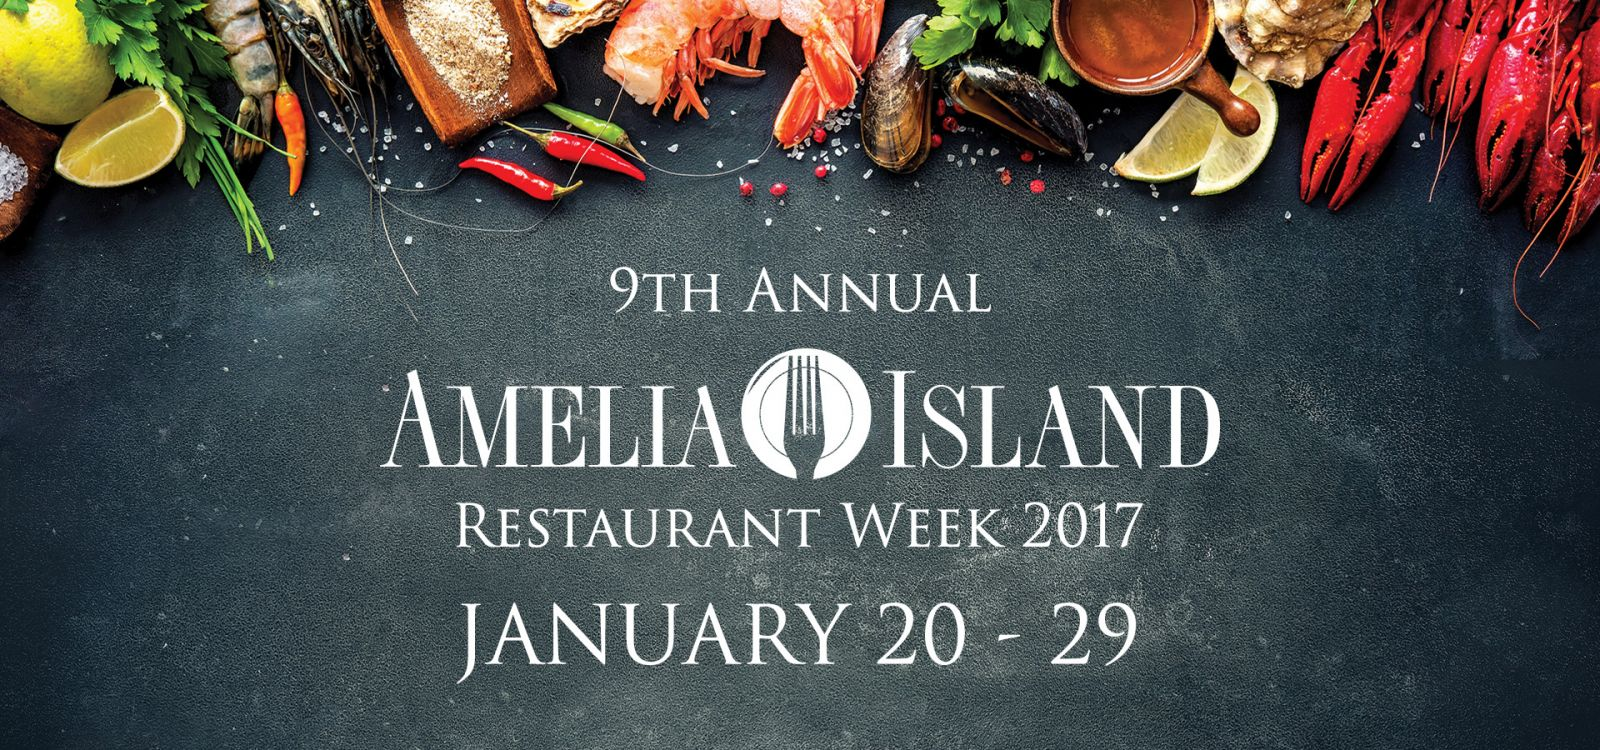 La Cucina South Amelia Island 904 Happy Hour Article Amelia Island S Annual Restaurant Week